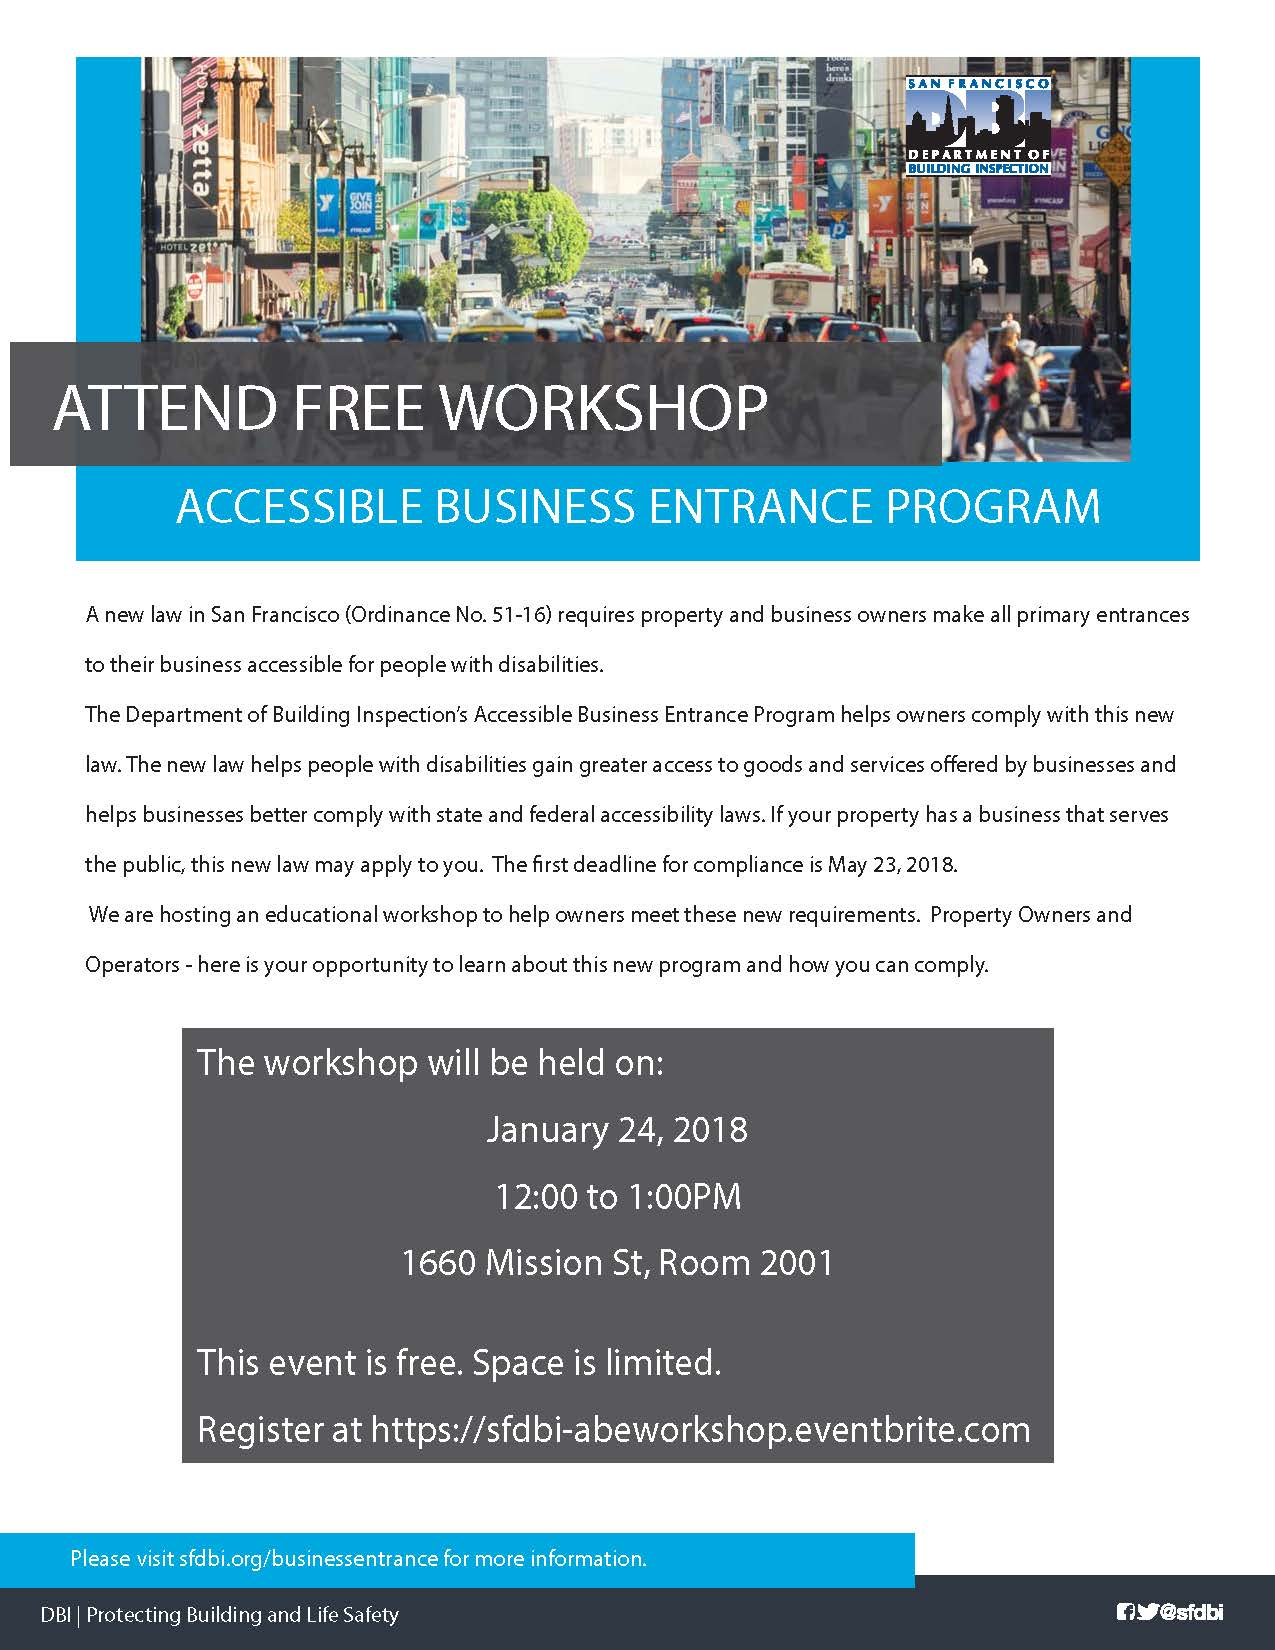 Accessible Business Entrance Program Workshop Information